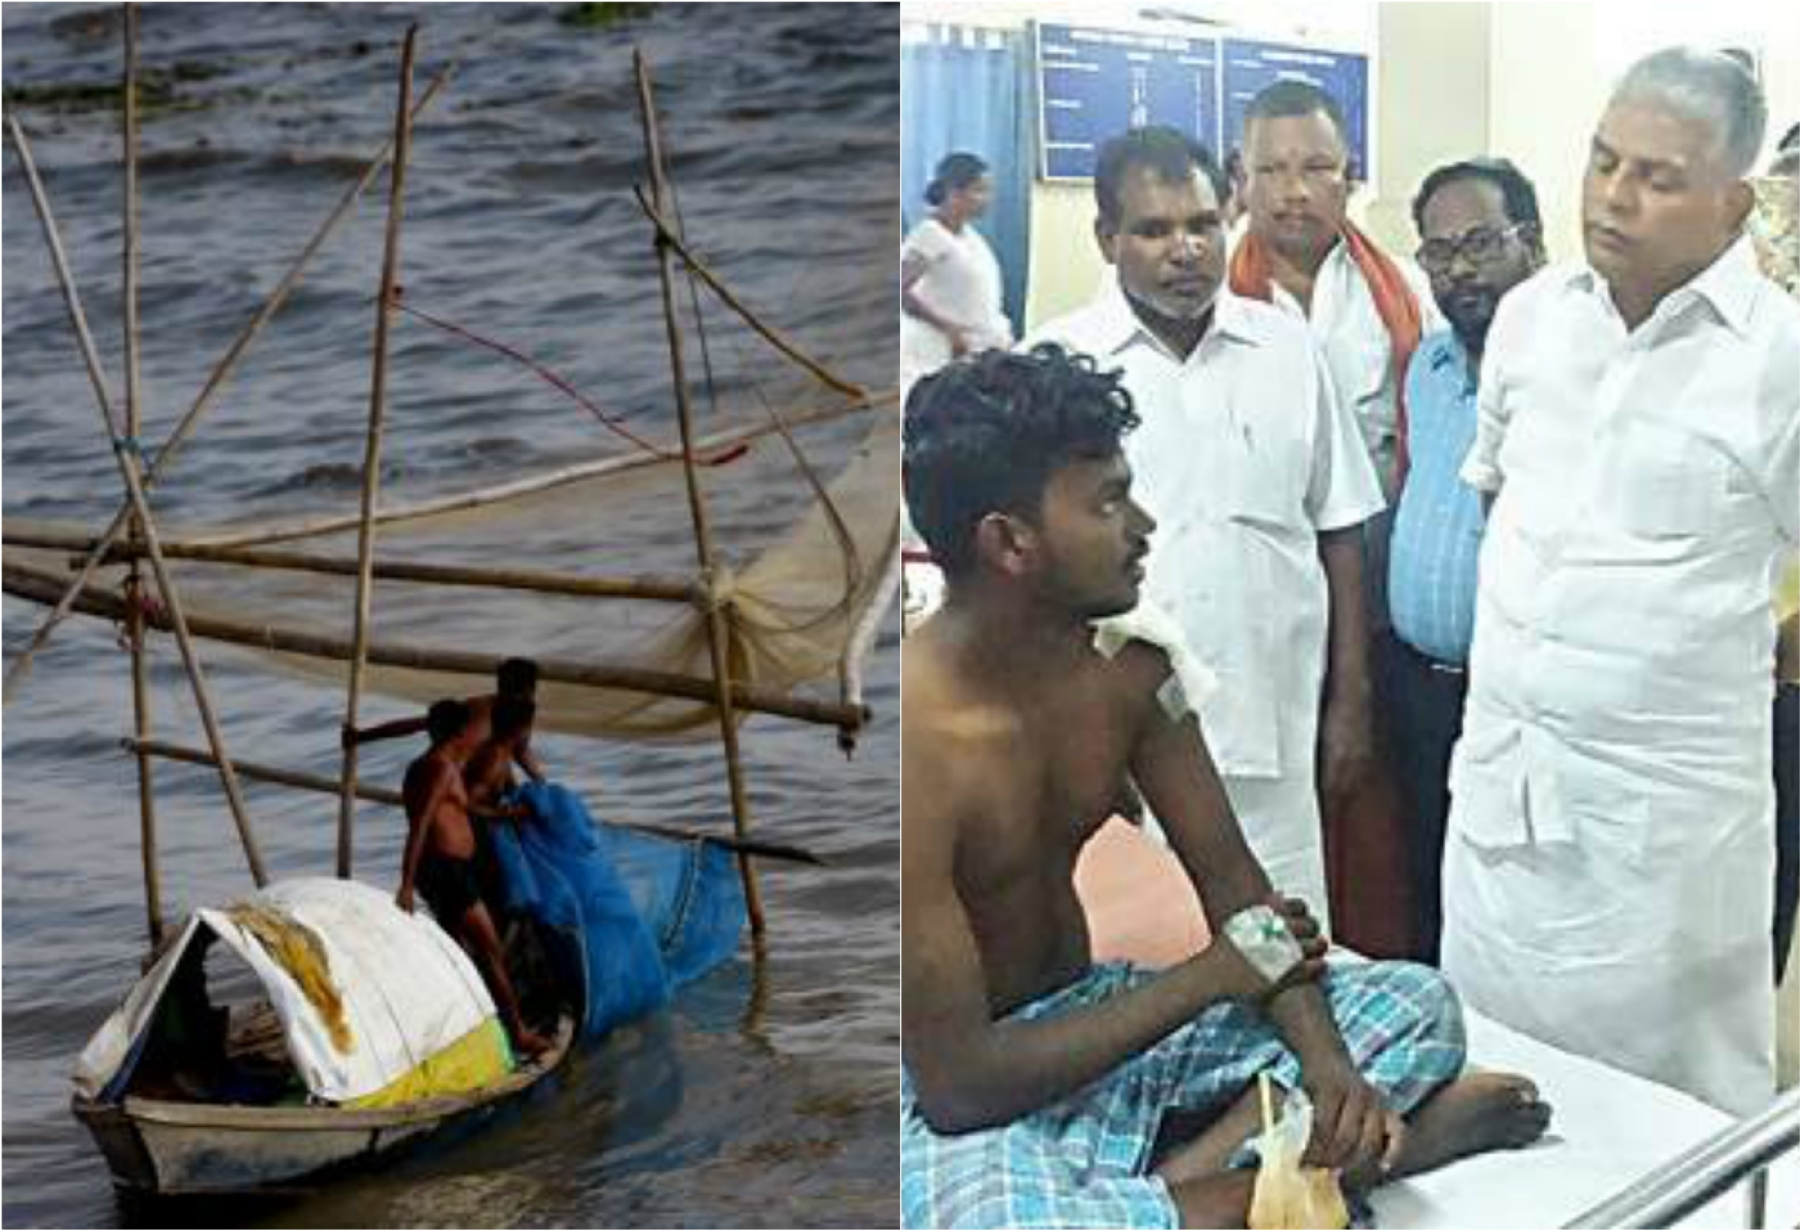 AIADMK urged PM Modi to protest against Sri Lankan Navy firing on Indian fishermen